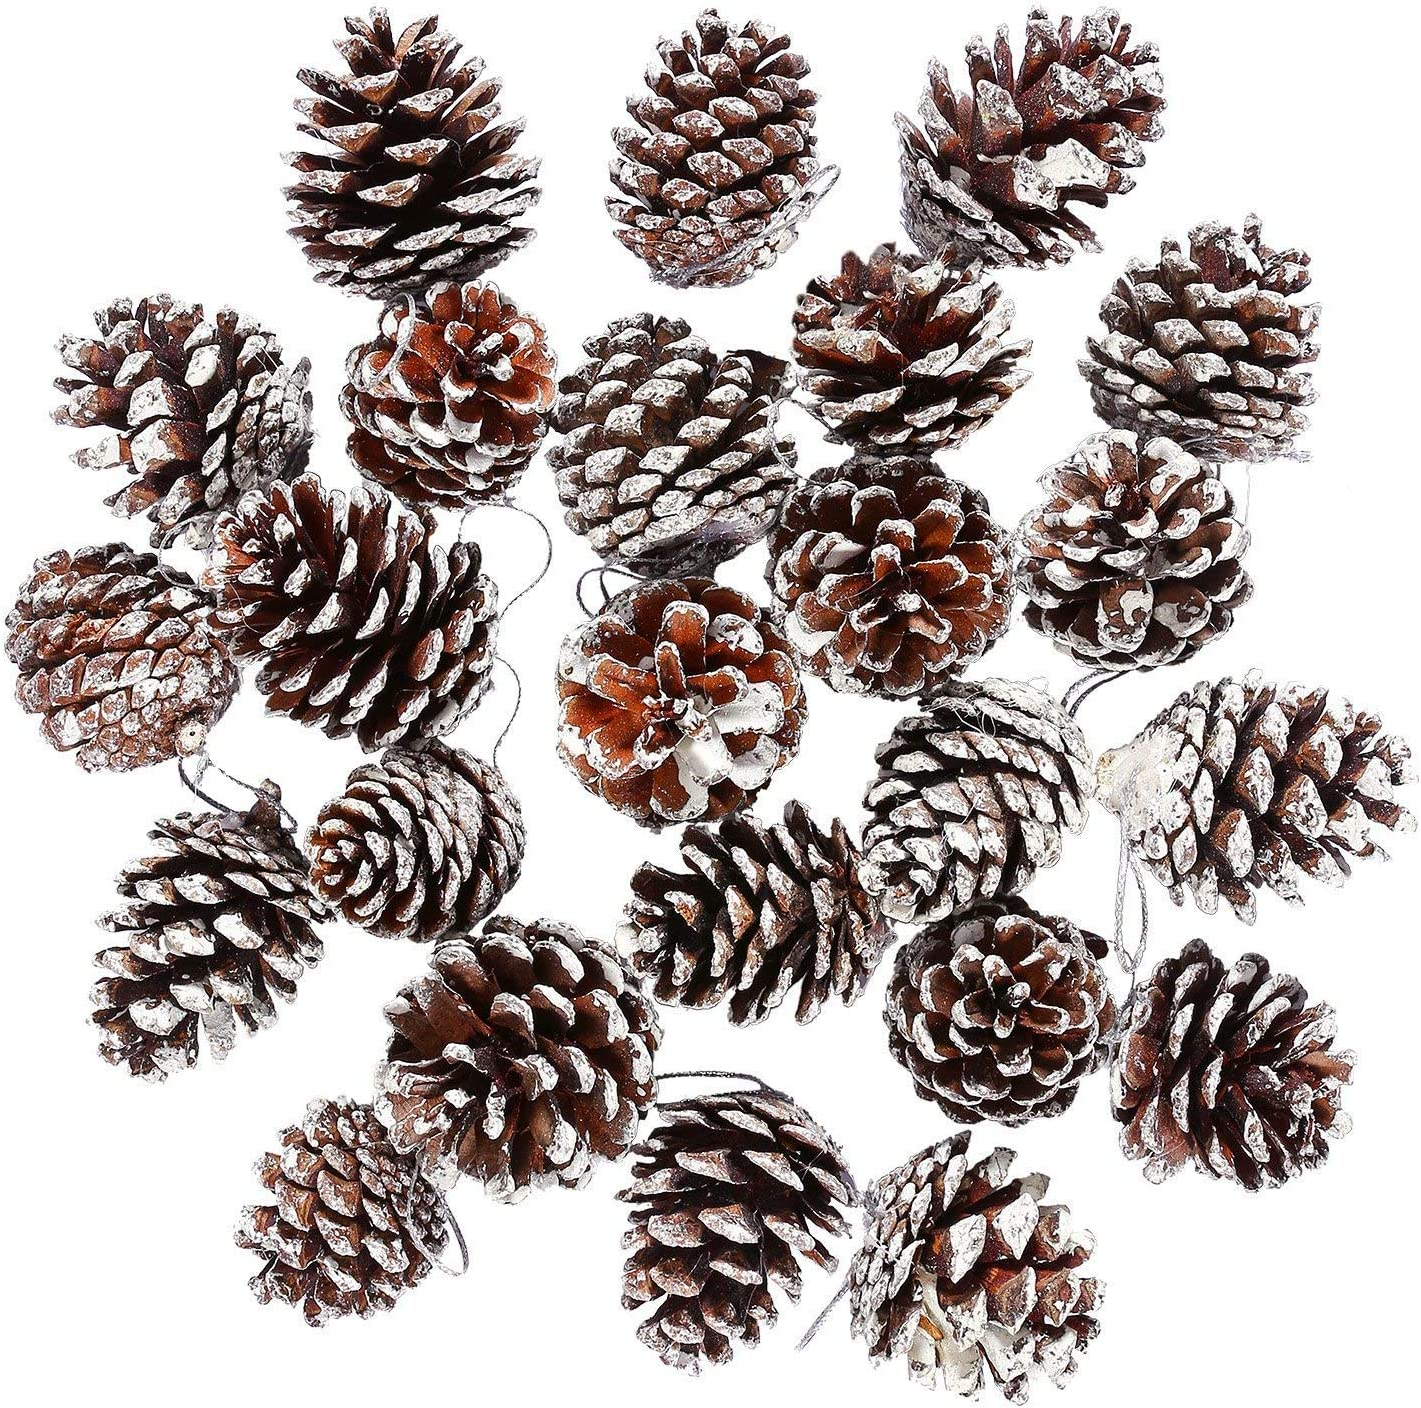 HDMI SM 6 Pcs Pine Cones Brown Christmas Pine Cones Tree Ornaments Hanging Pendant with String for Christmas Tree Decoration Miniature Garden Decoration